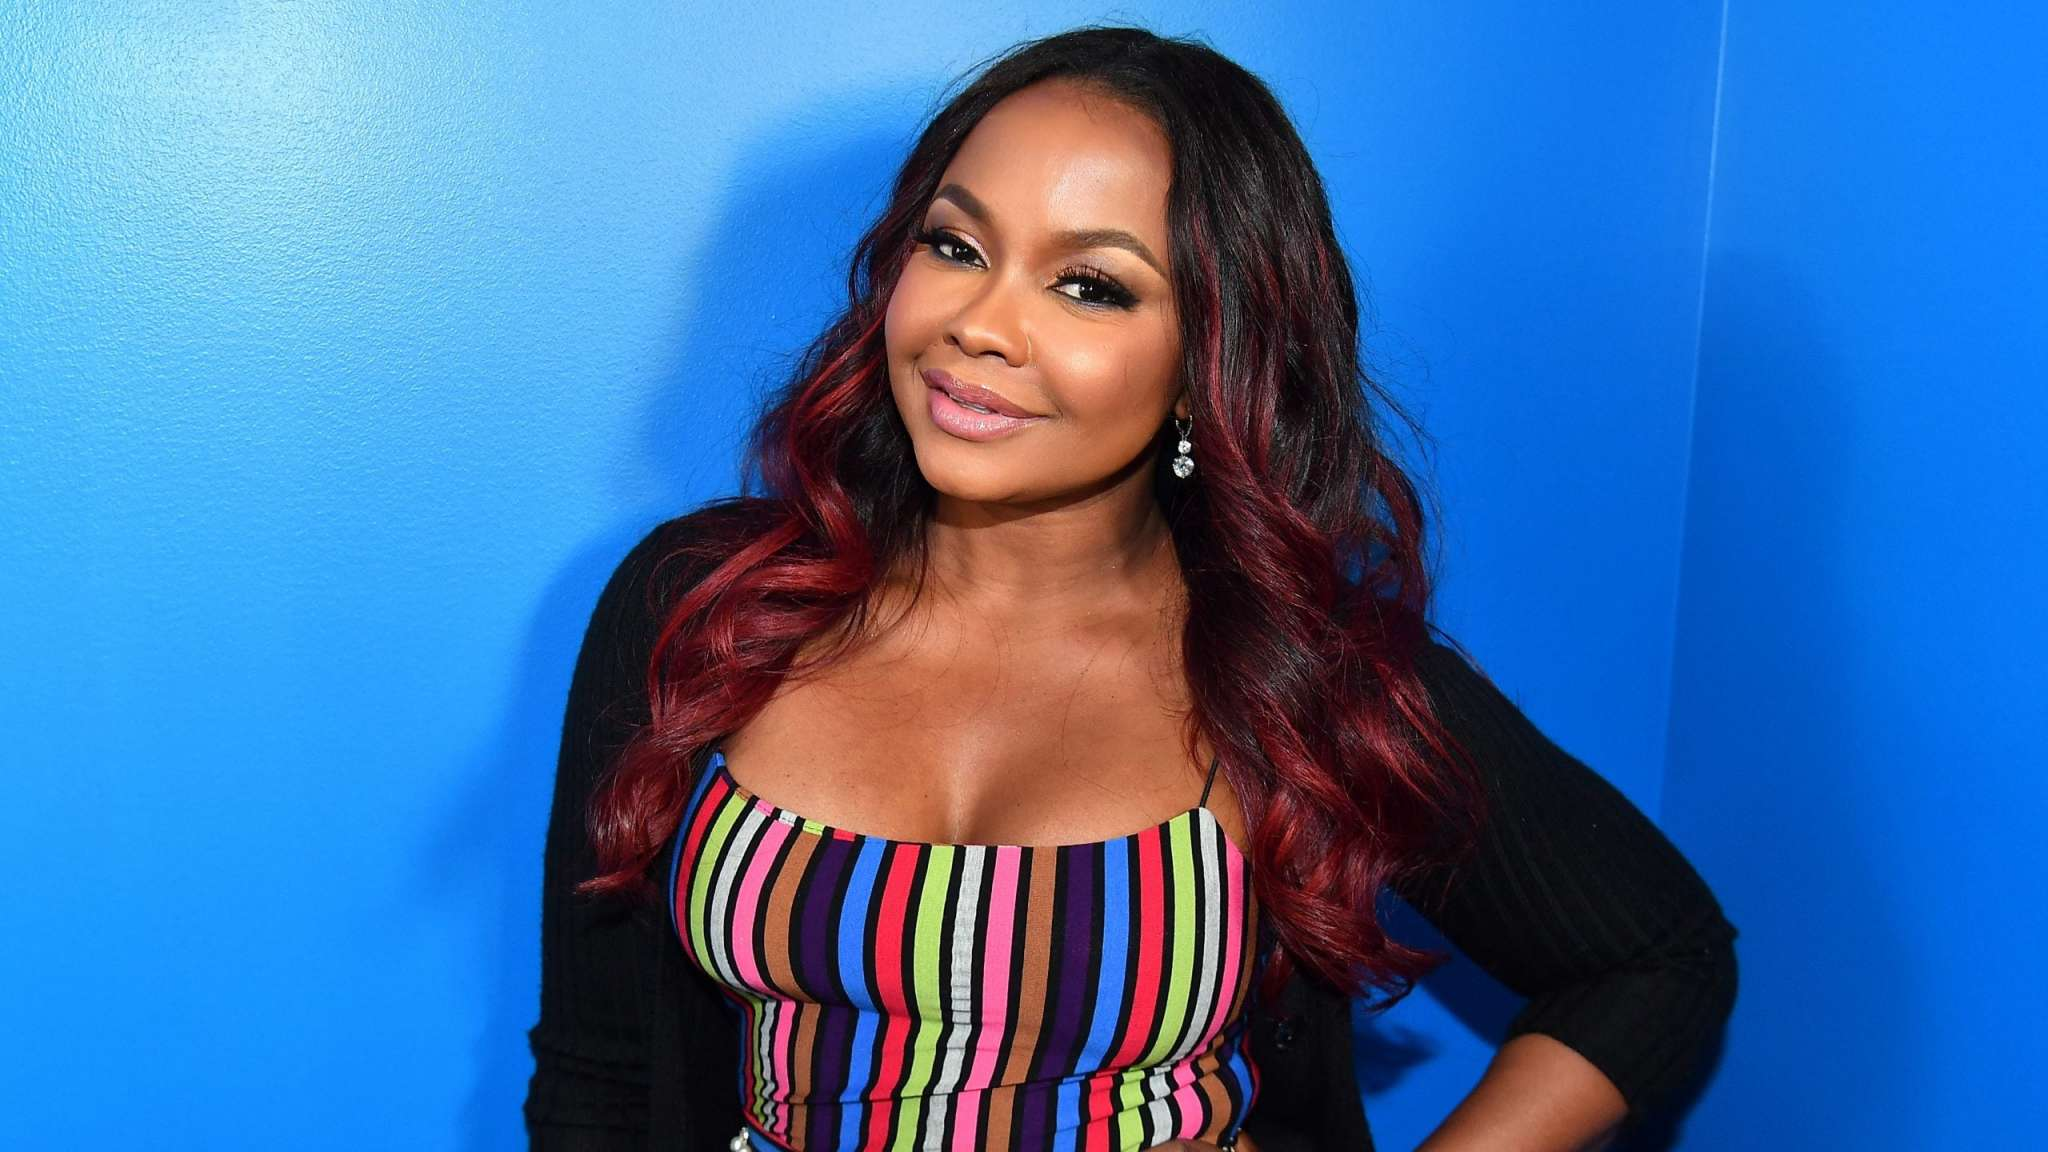 Phaedra Parks Looks Amazing In This Green Dress – Check It Out Here